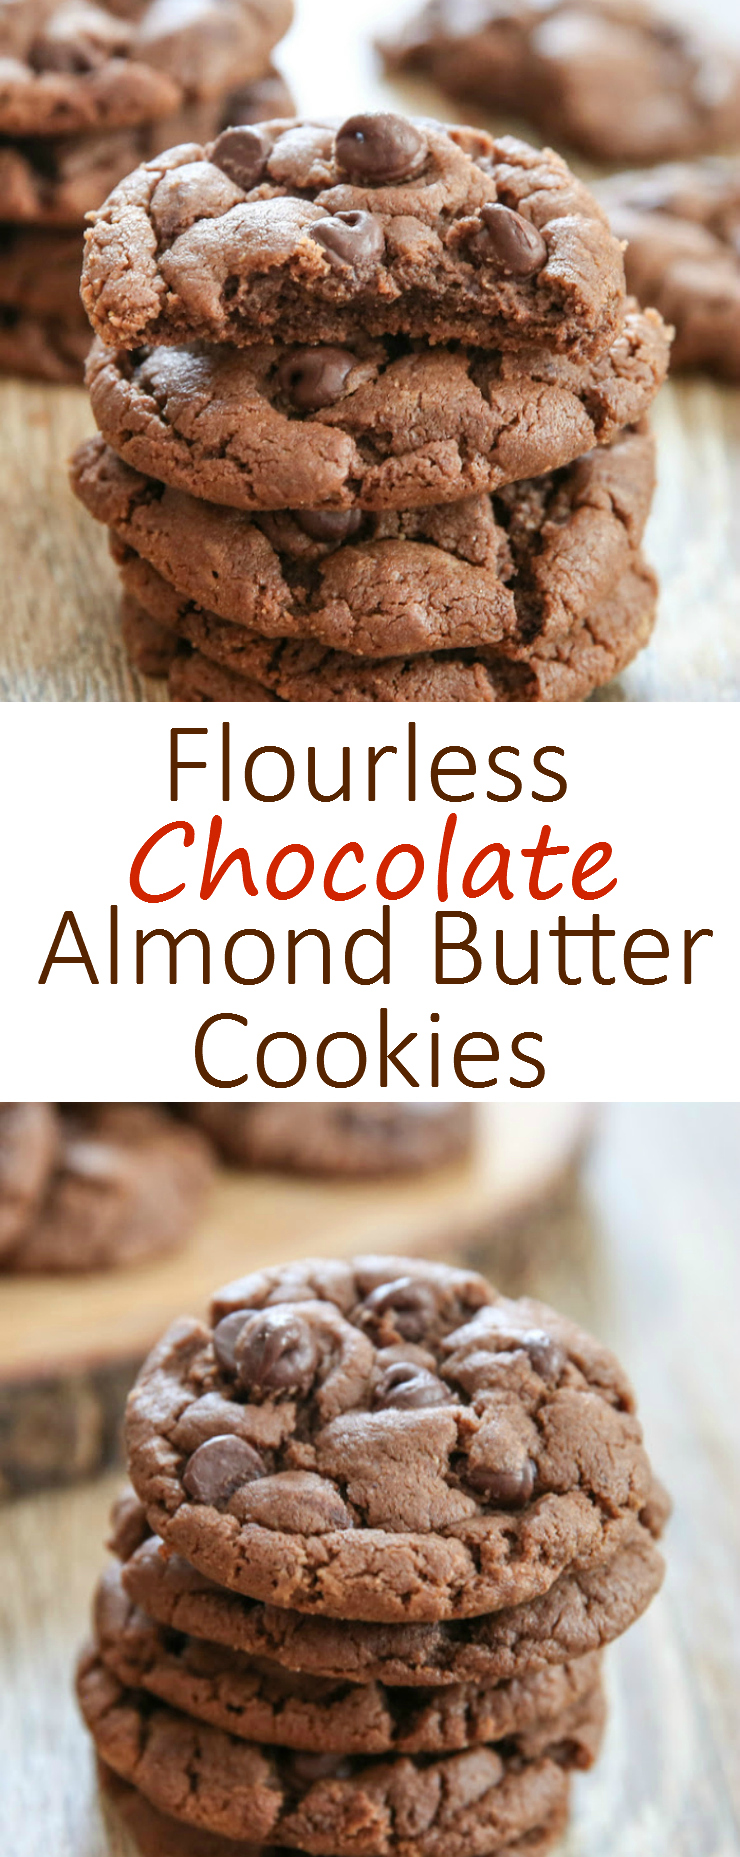 Flourless Chocolate Almond Butter Cookies photo collage